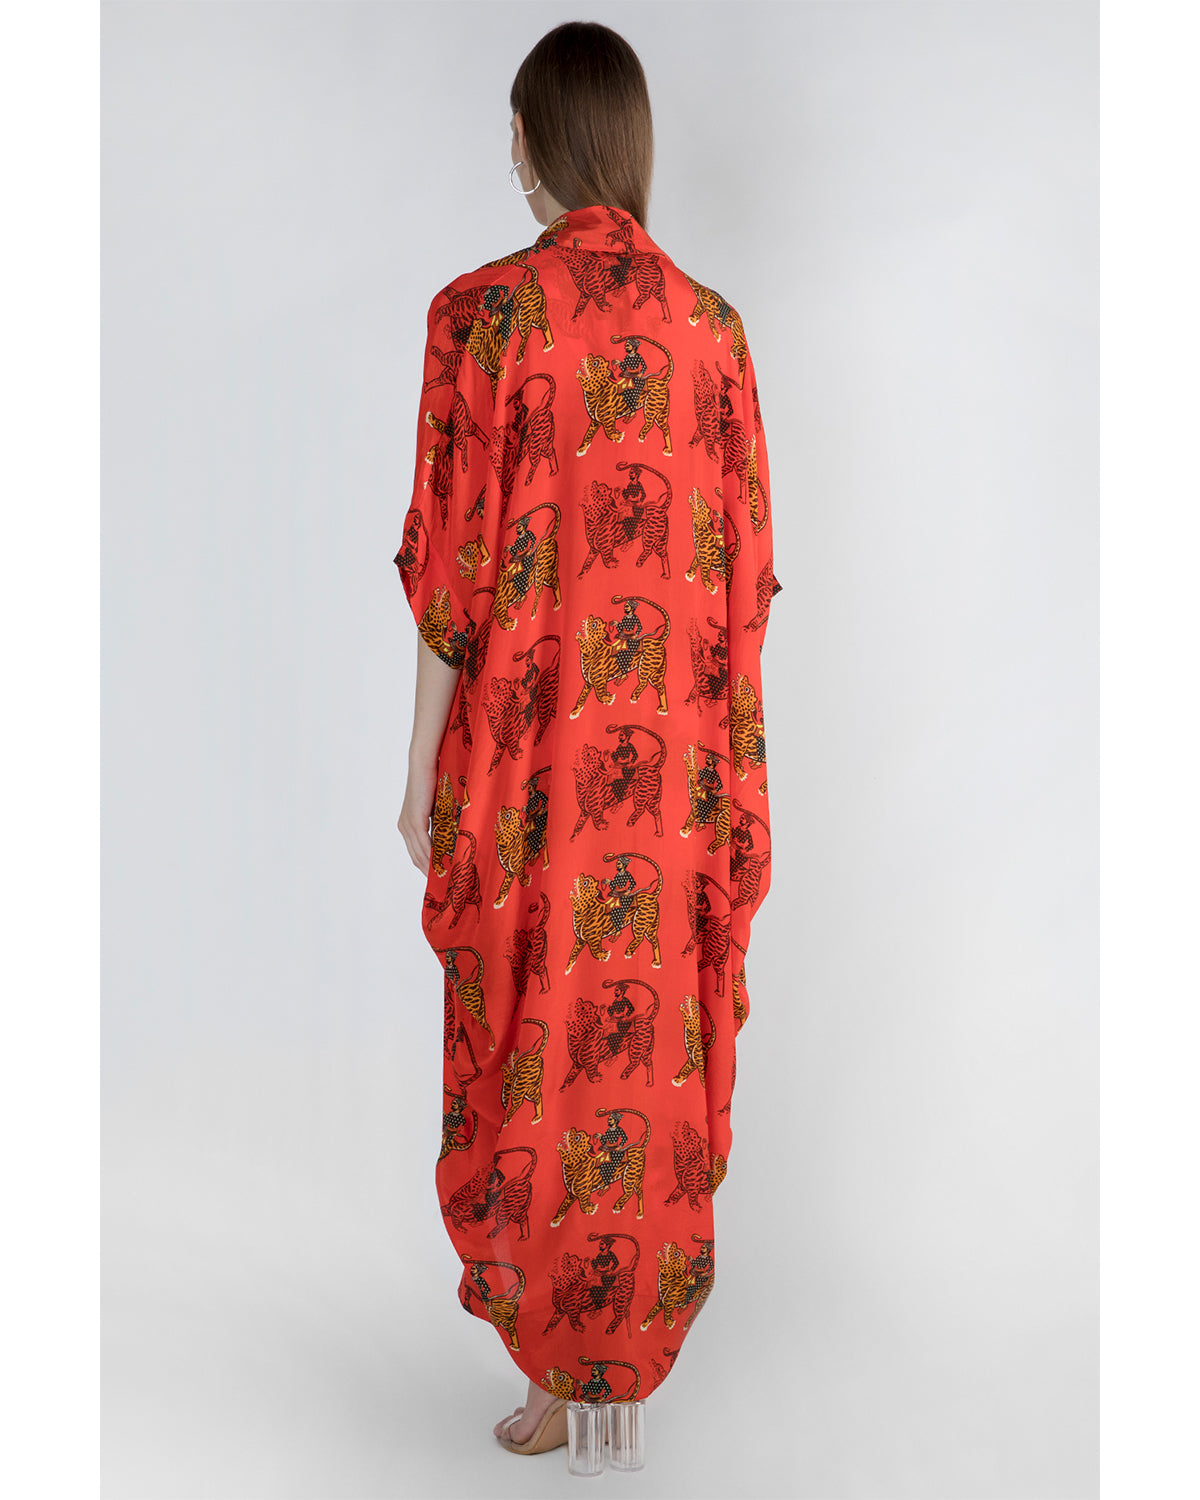 House of Red Sultan Cowl Top and Dhoti and Cape